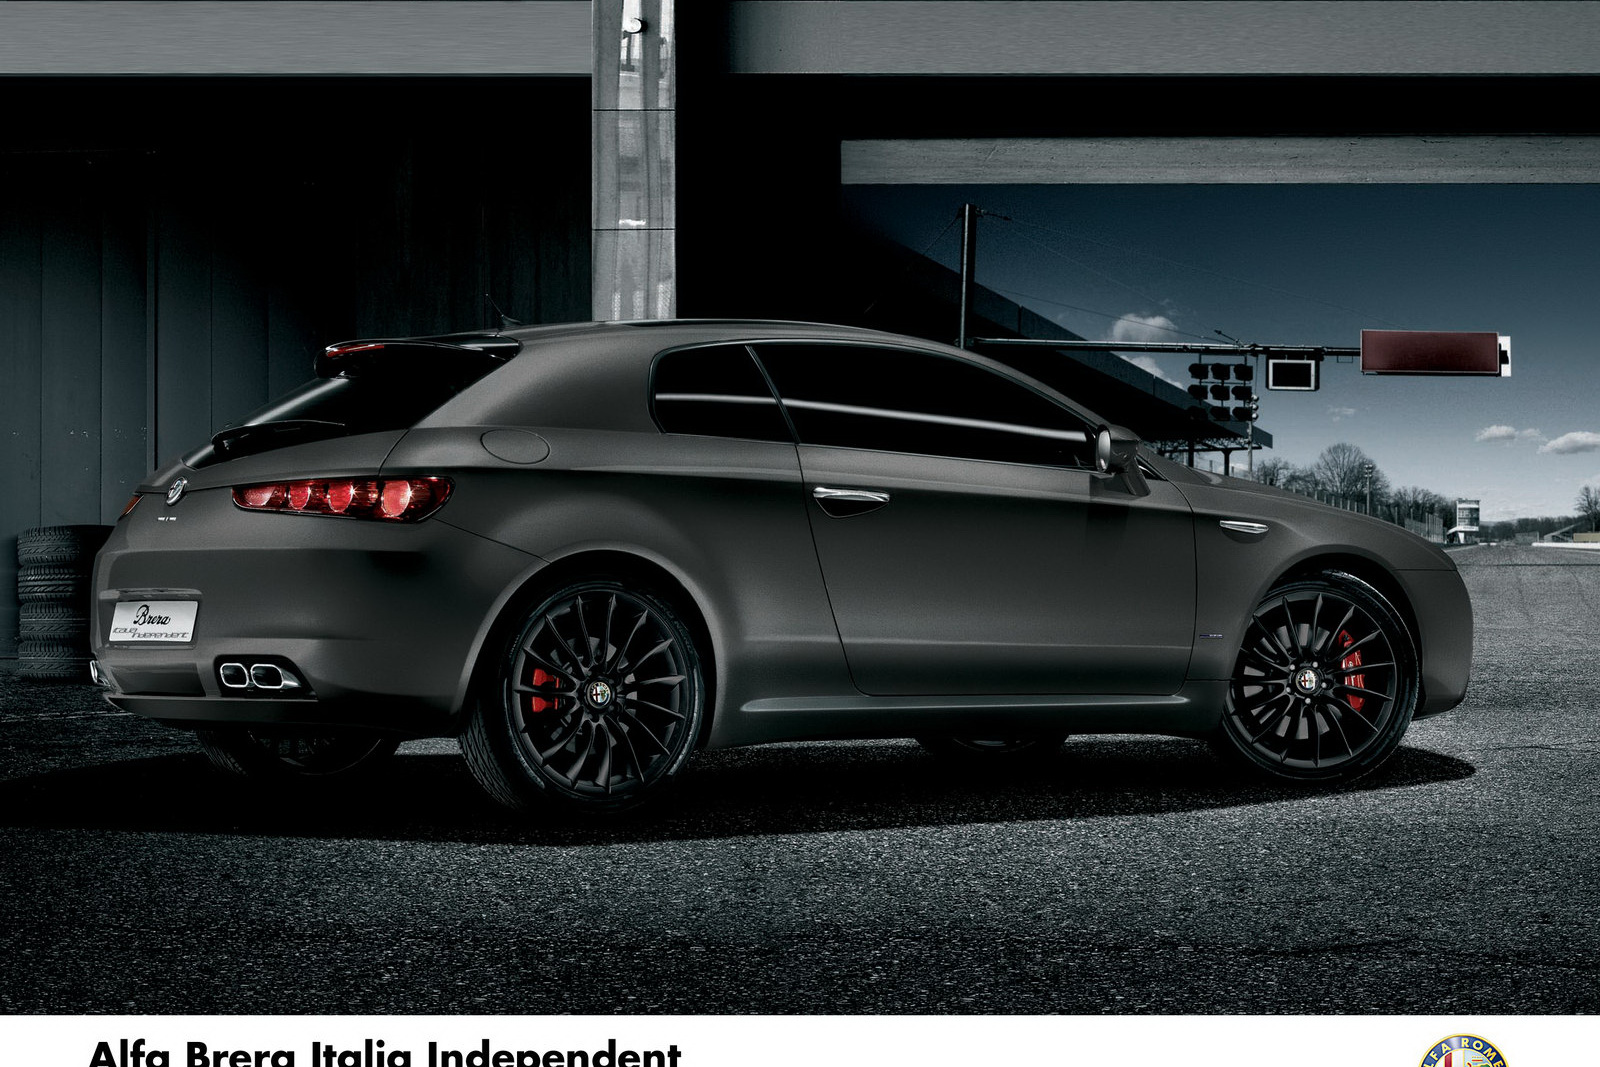 Alfa Uk Adds New Turbo Engines And Special Version To